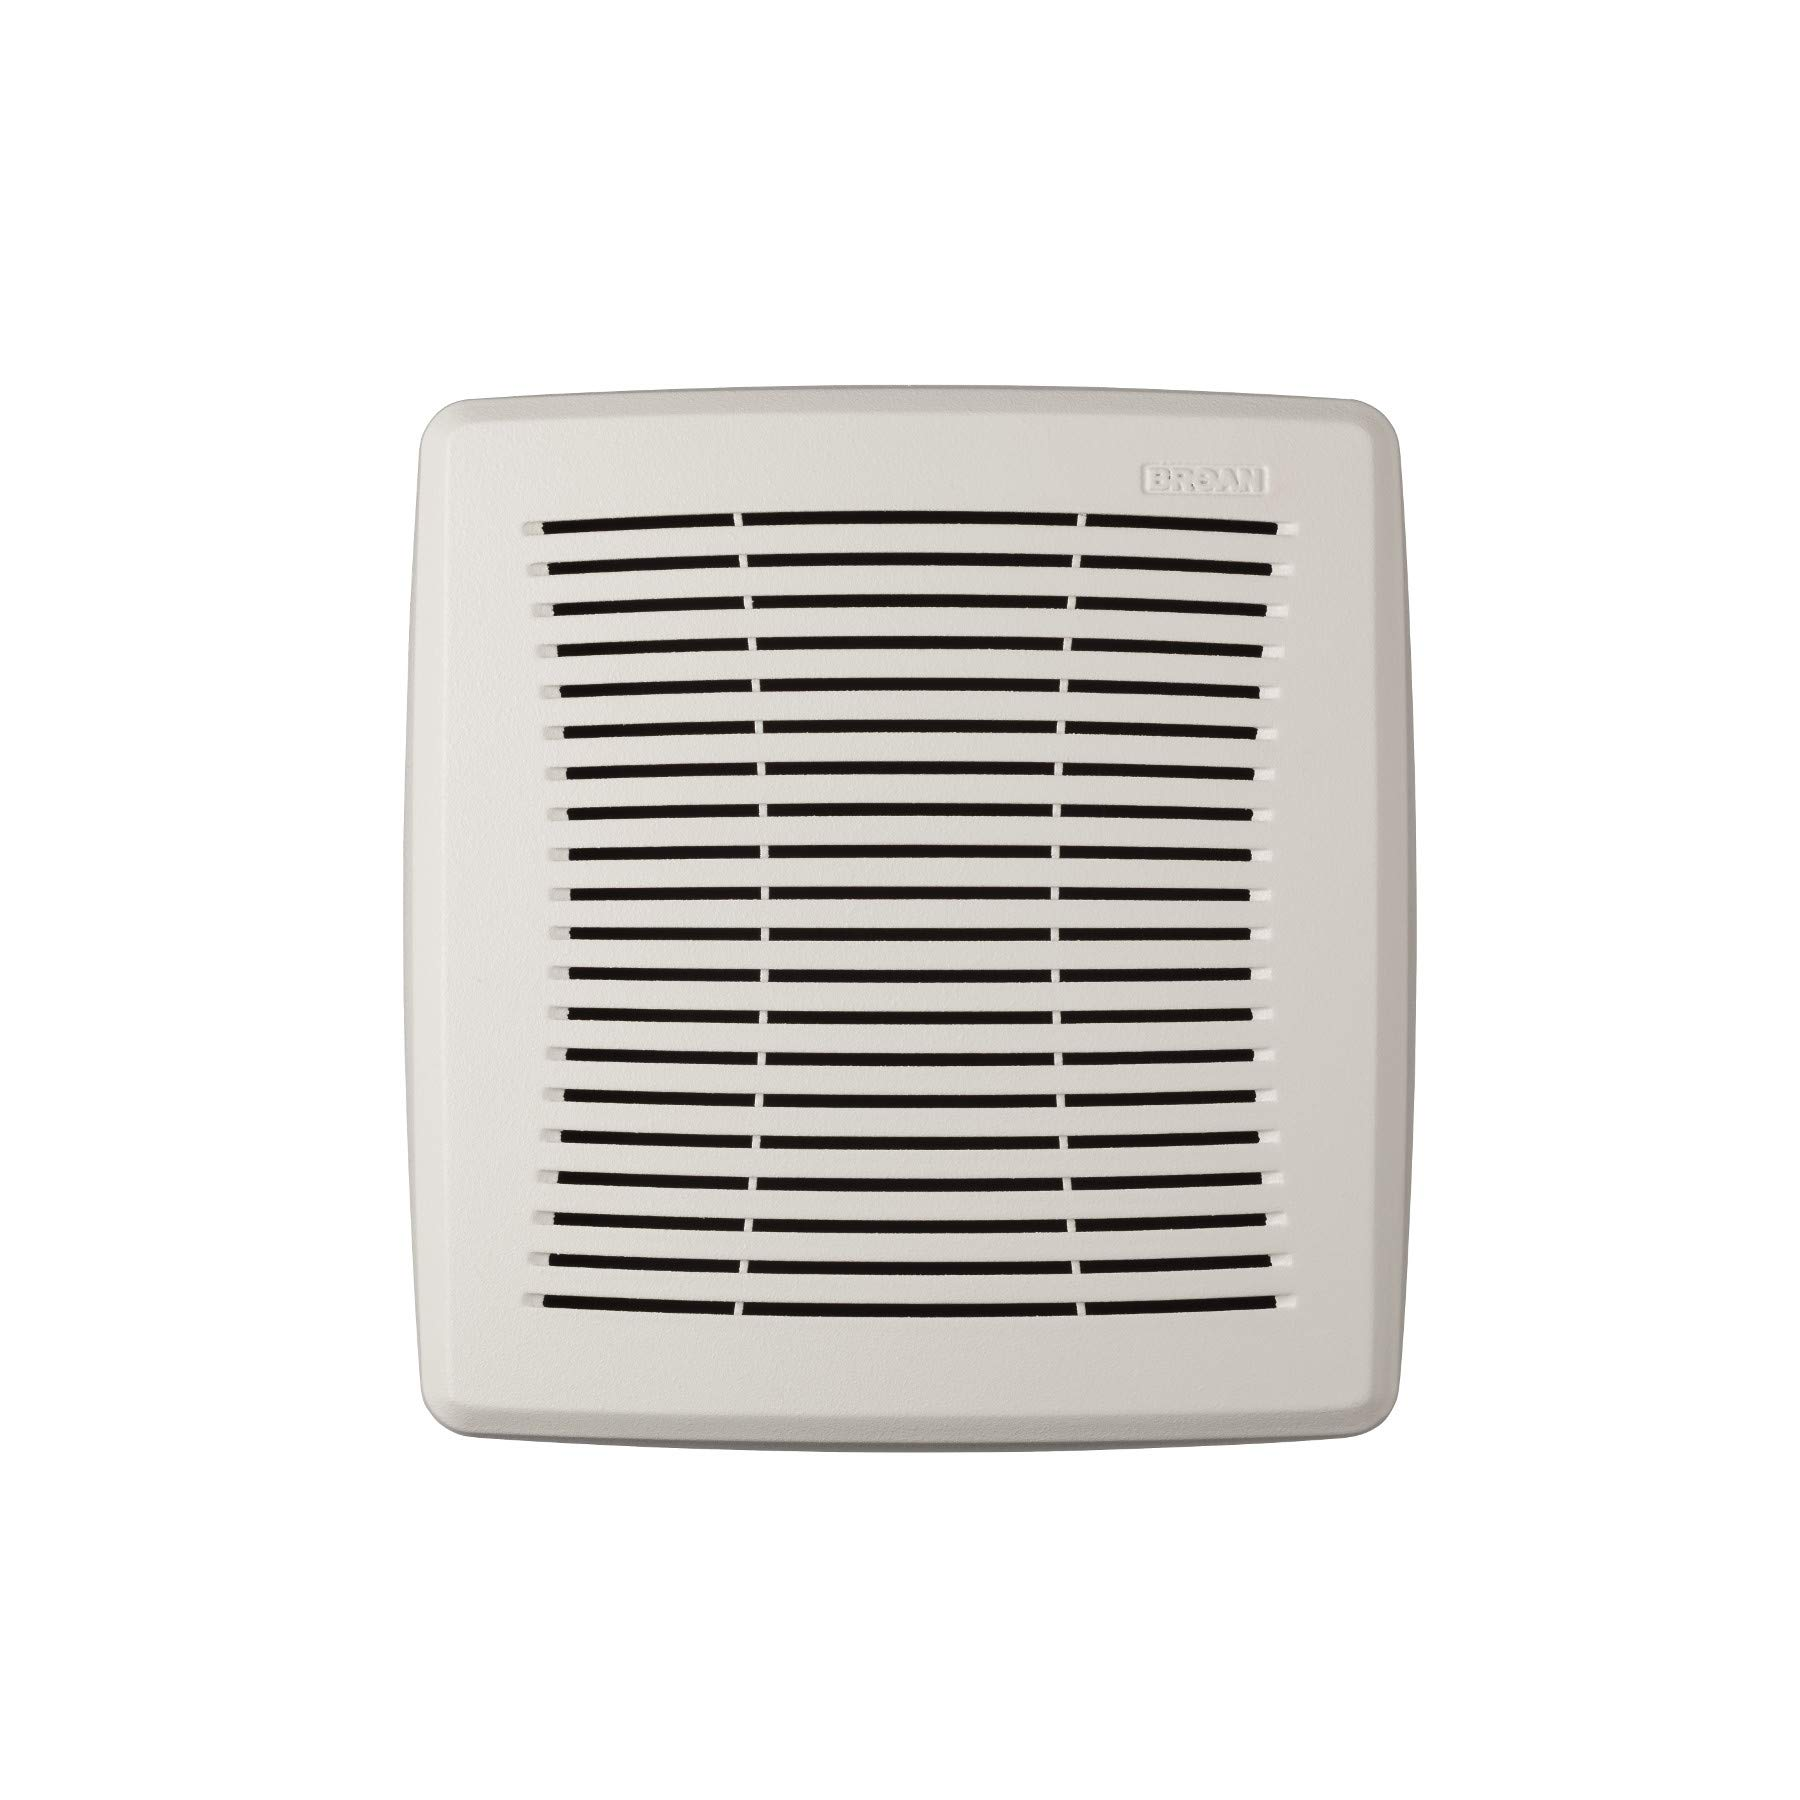 Broan Nutone Fgr101s Economy Replacement Square Ceiling Bathroom Ventilation And Exhaust Fans Easy Diy Installation White Grille Cover Buy Online In Bahrain At Bahrain Desertcart Com Productid 191900289